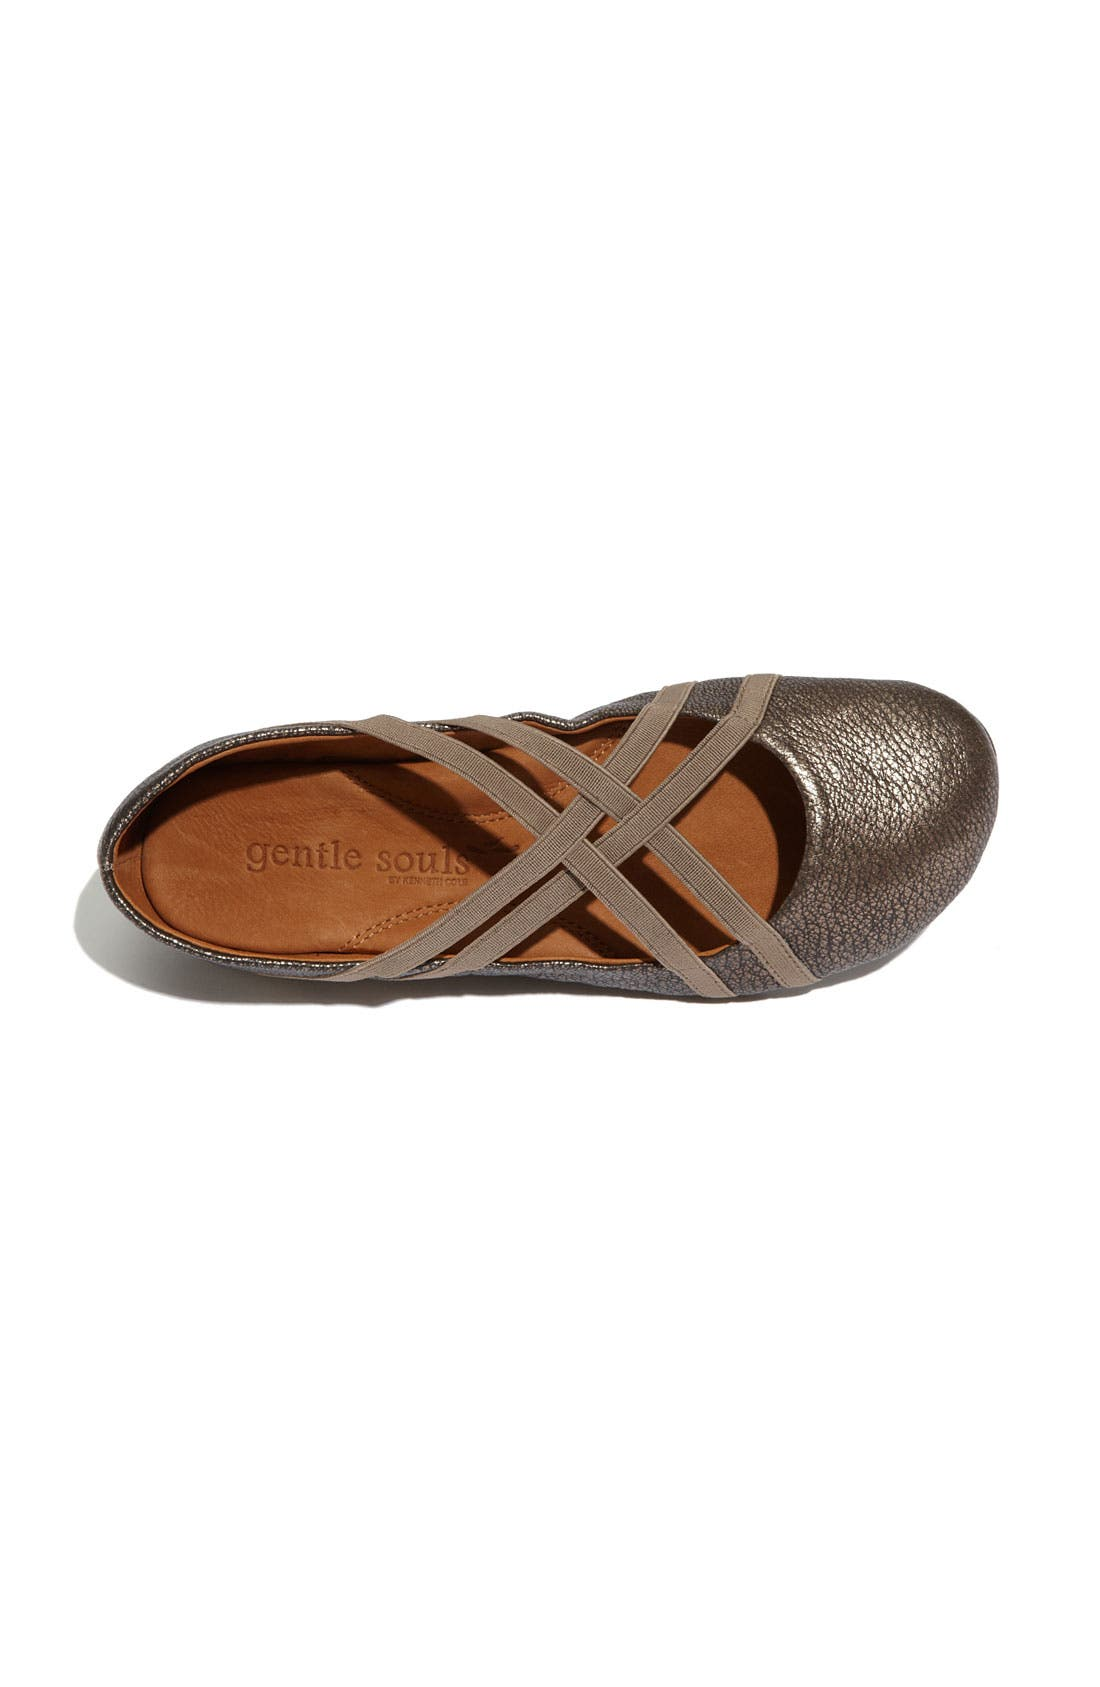 GENTLE SOULS BY KENNETH COLE, 'Bay Braid' Flat, Alternate thumbnail 3, color, ANTIQUE PEWTER